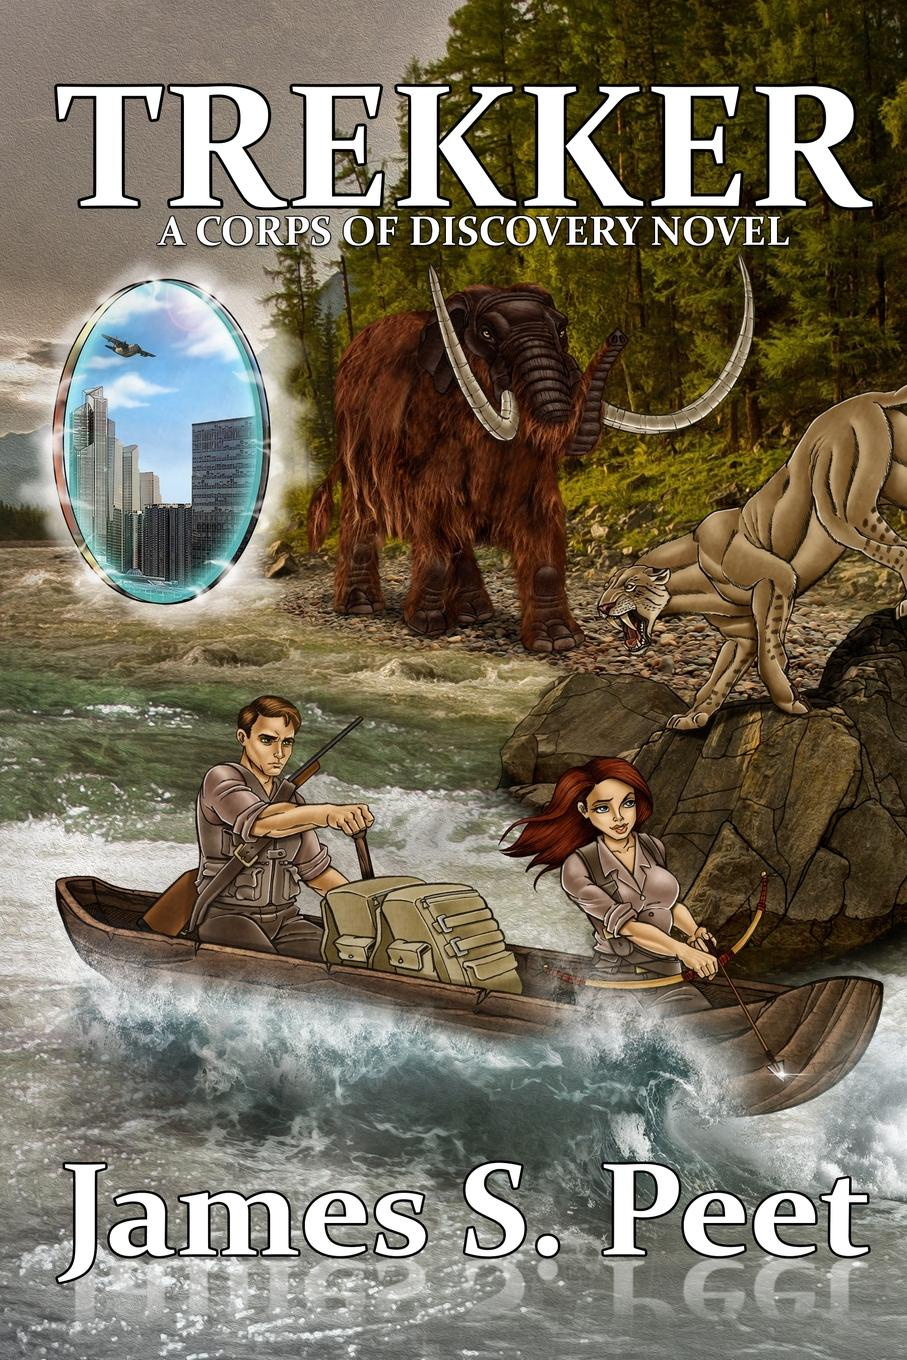 James S. Peet. Trekker. Book 2 in the Corps of Discovery Series